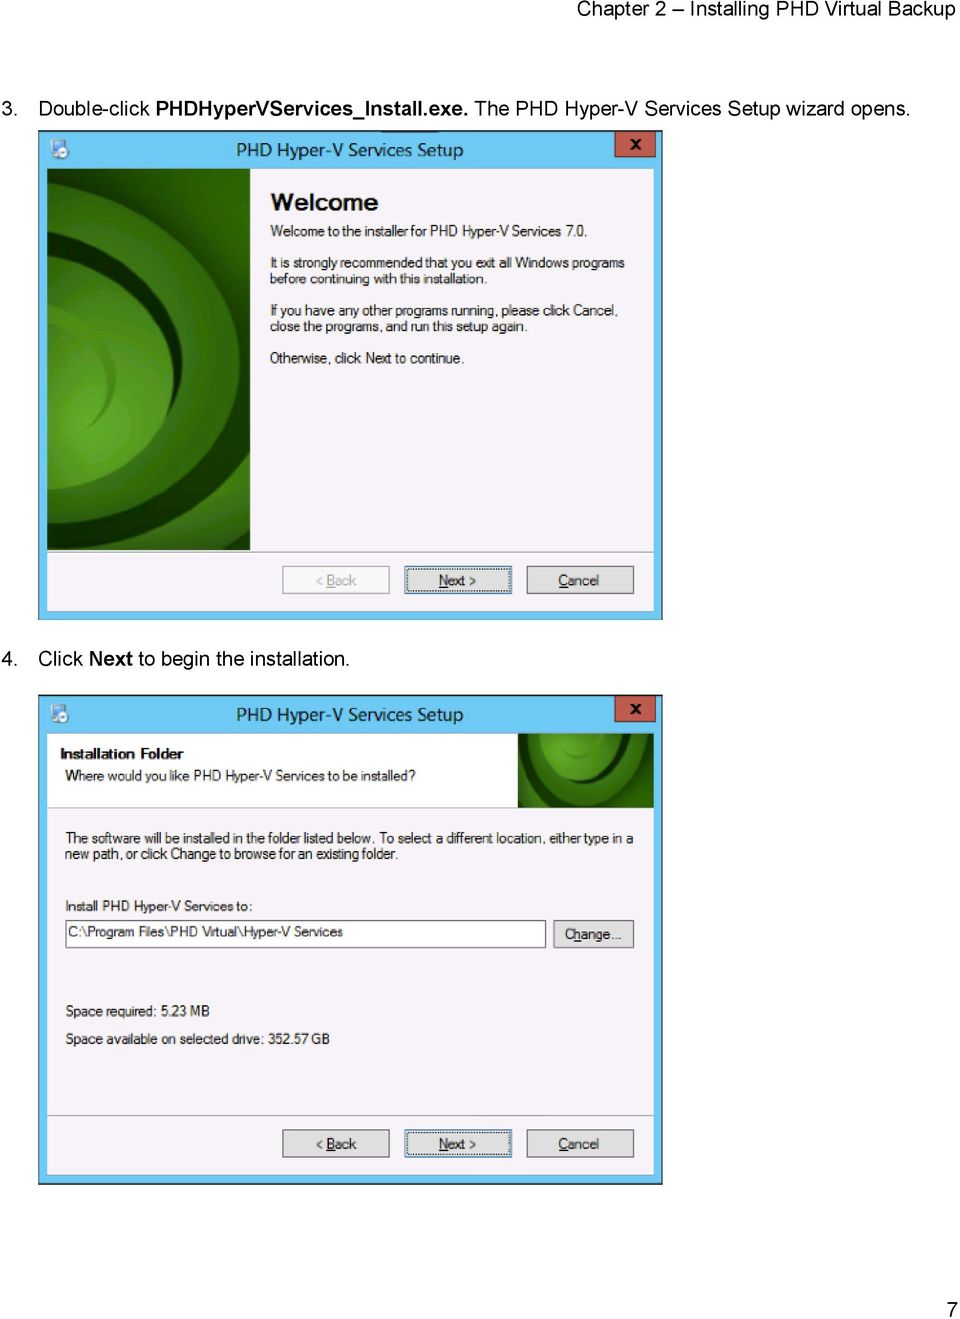 The PHD Hyper-V Services Setup wizard opens.